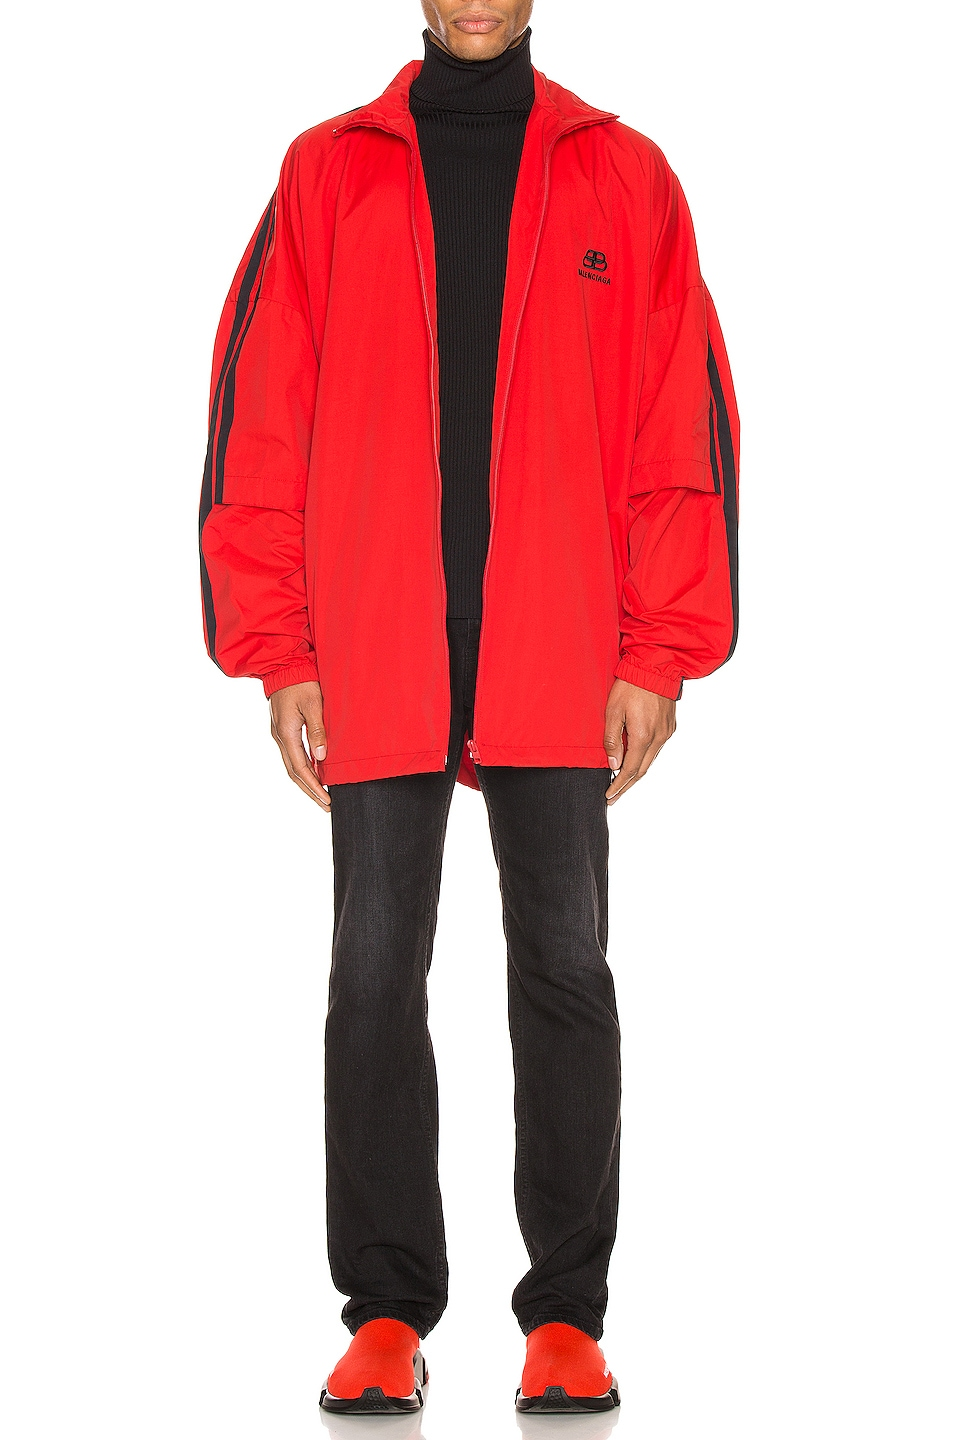 Image 6 of Balenciaga Double Sleeve Zip Up in Masai Red